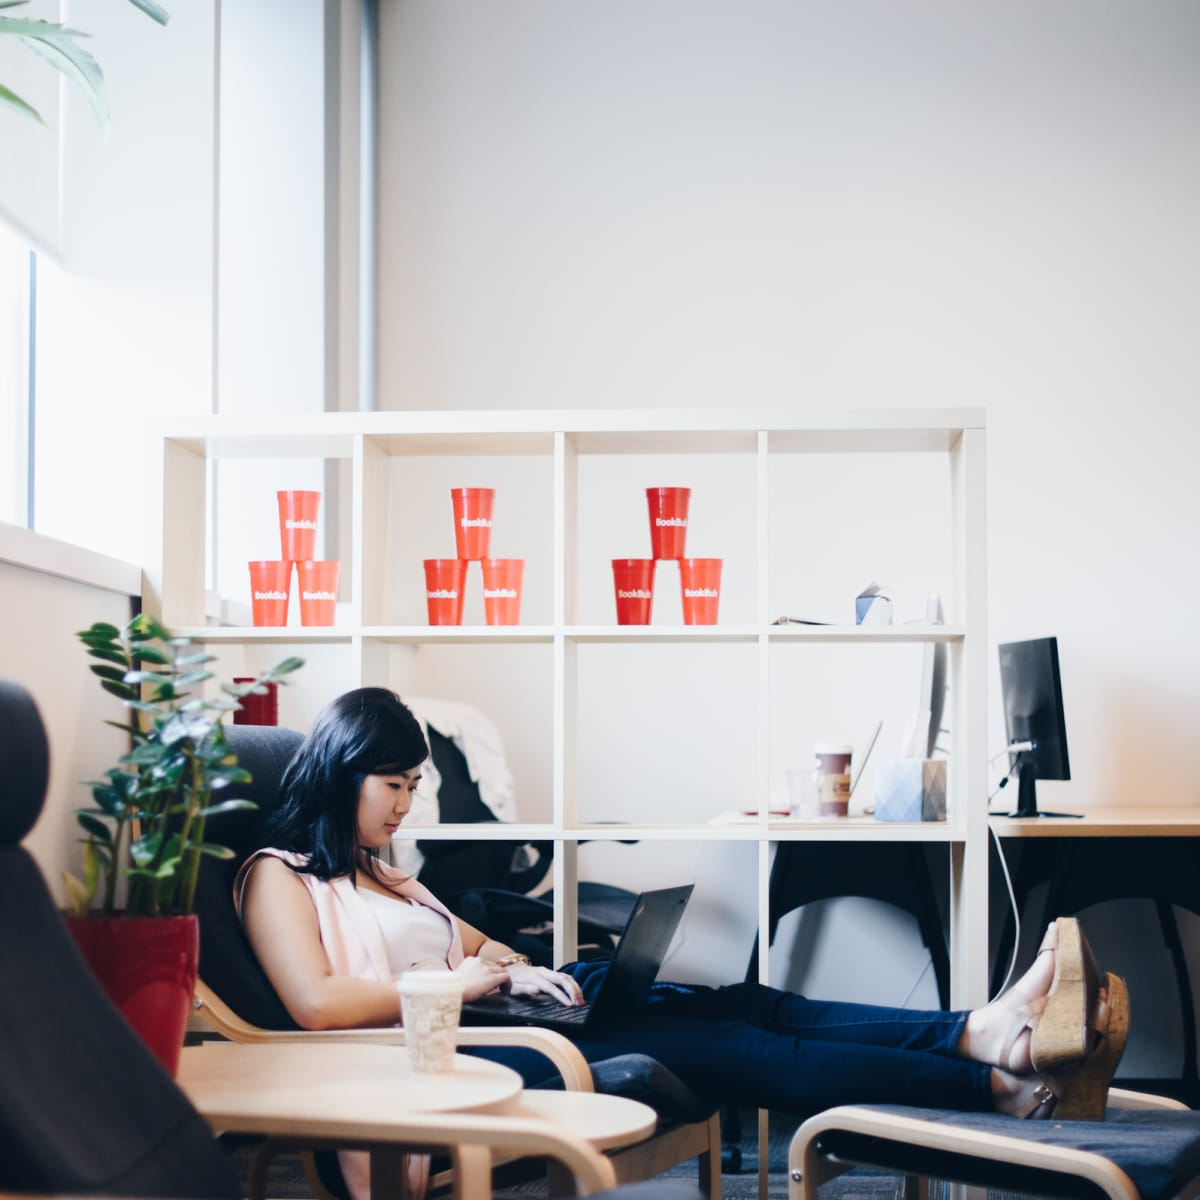 A BookBub employee sits in the quiet room in the office, working in a comfortable chair.